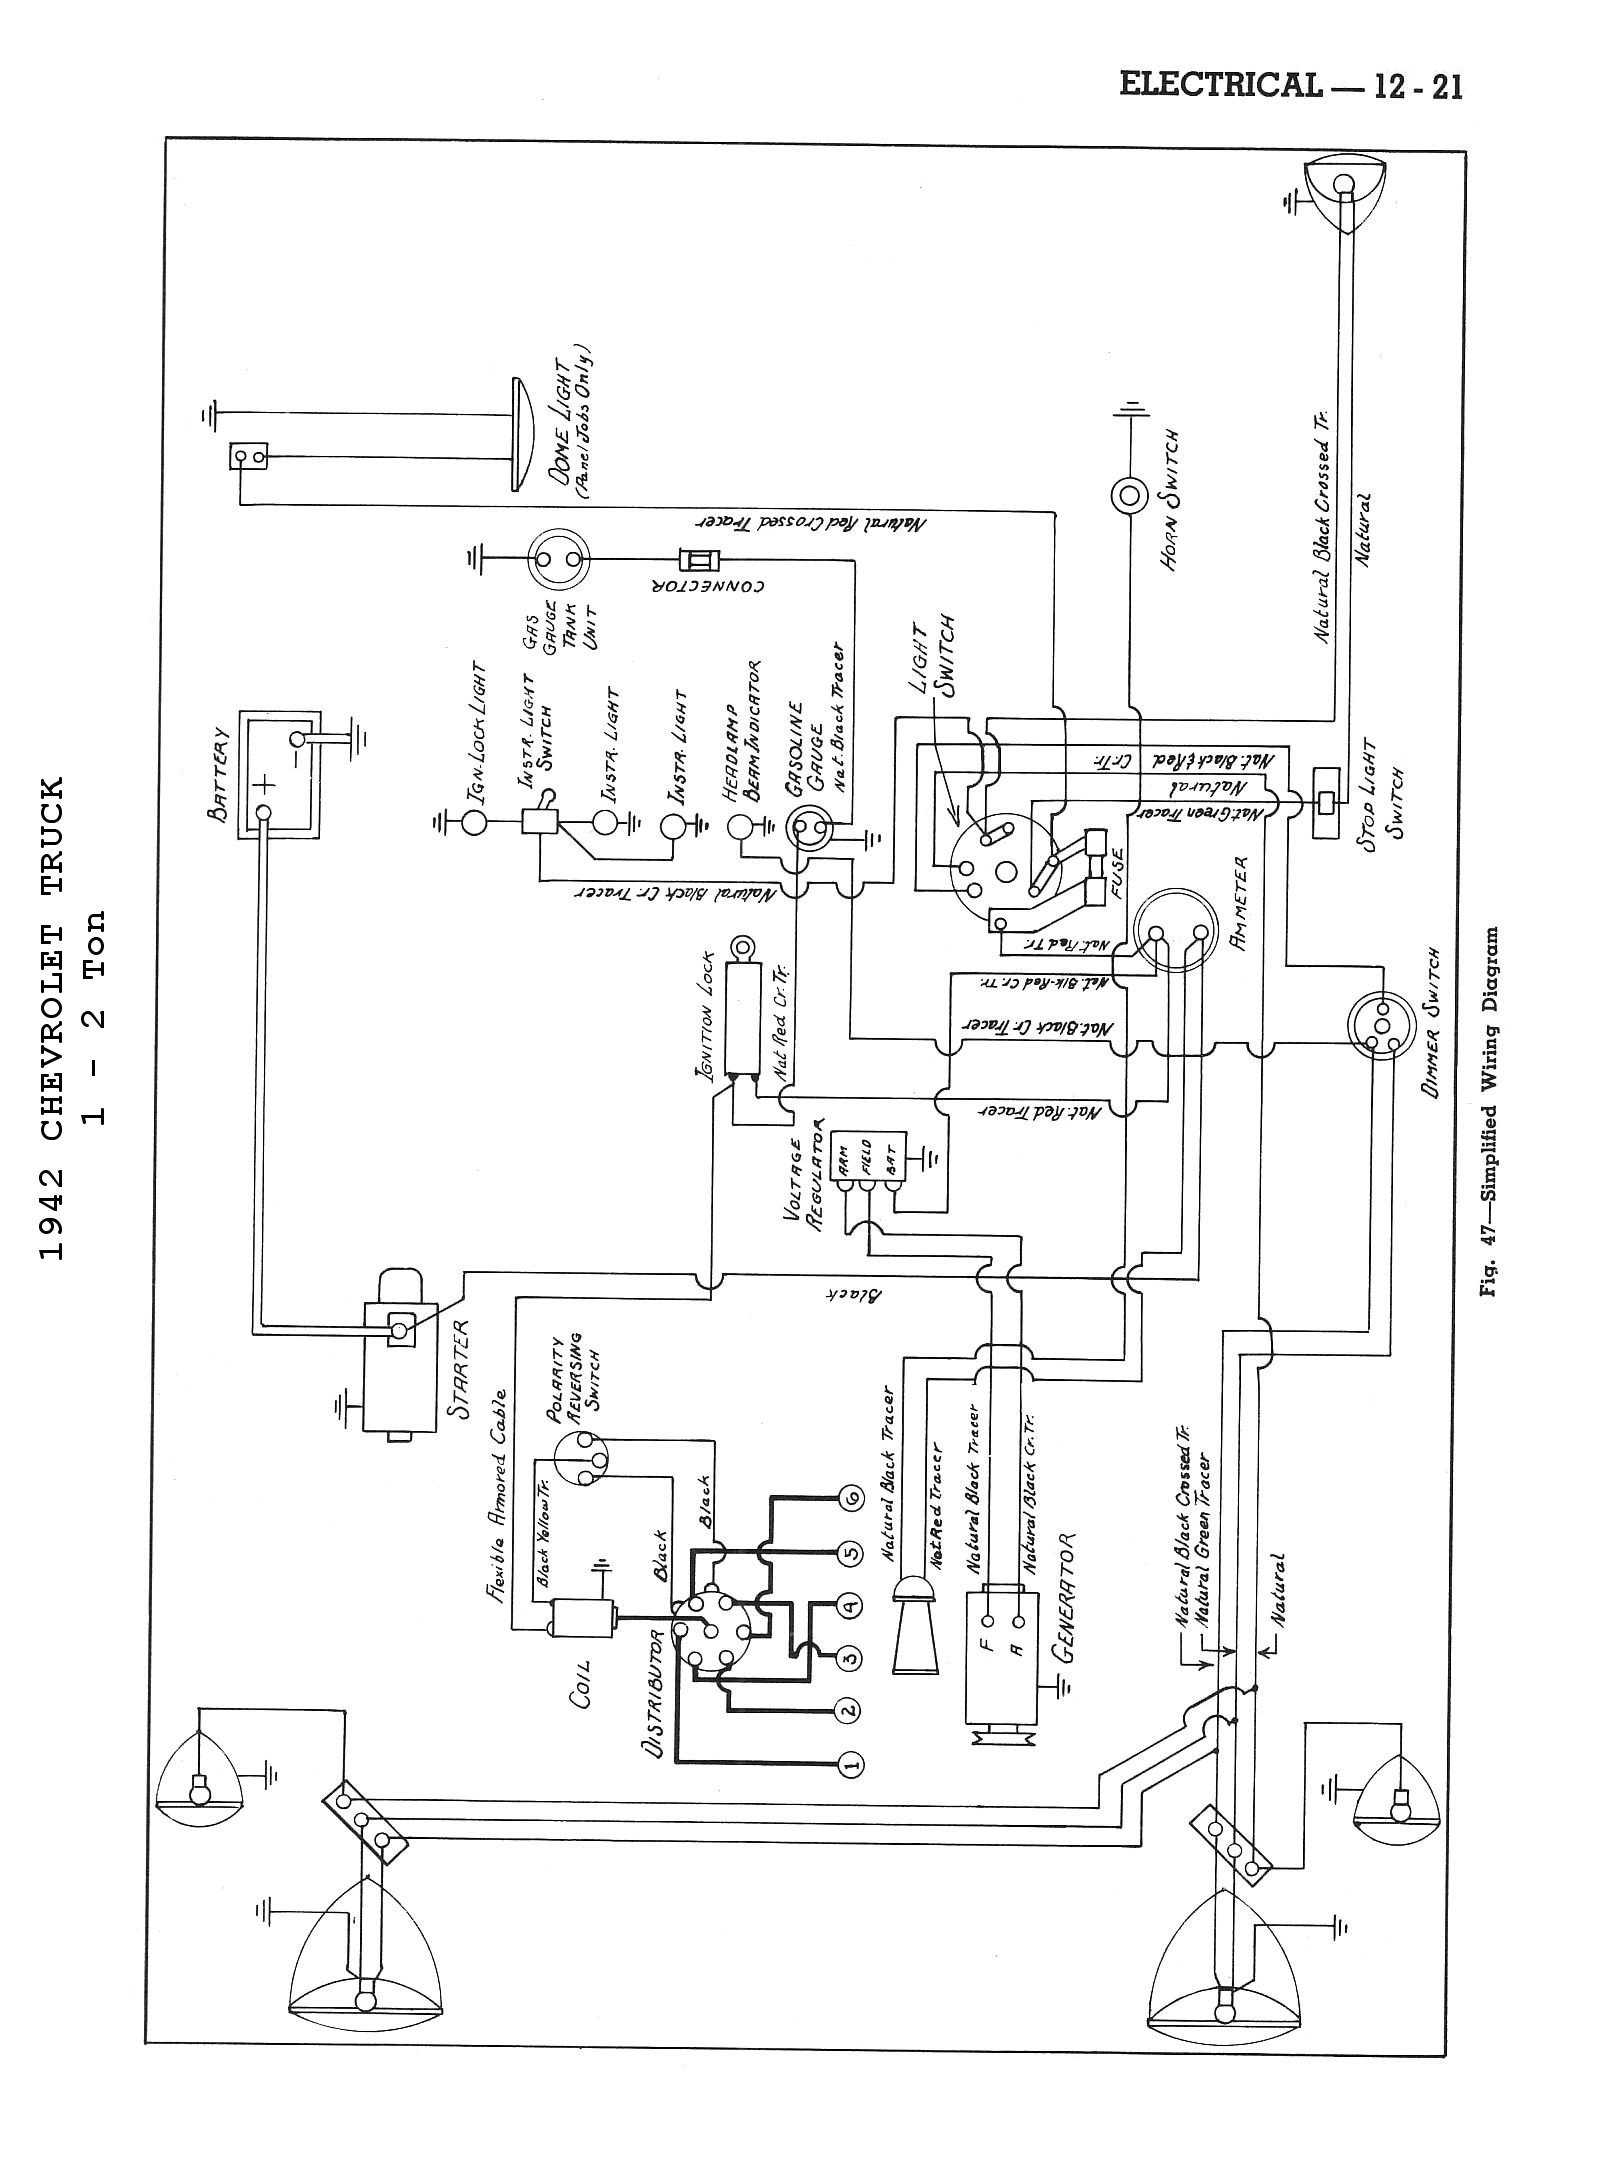 Wire Diagram 1978 Dodge D100 Wiring Library 1942 4x2 Truck Chevy Diagrams From